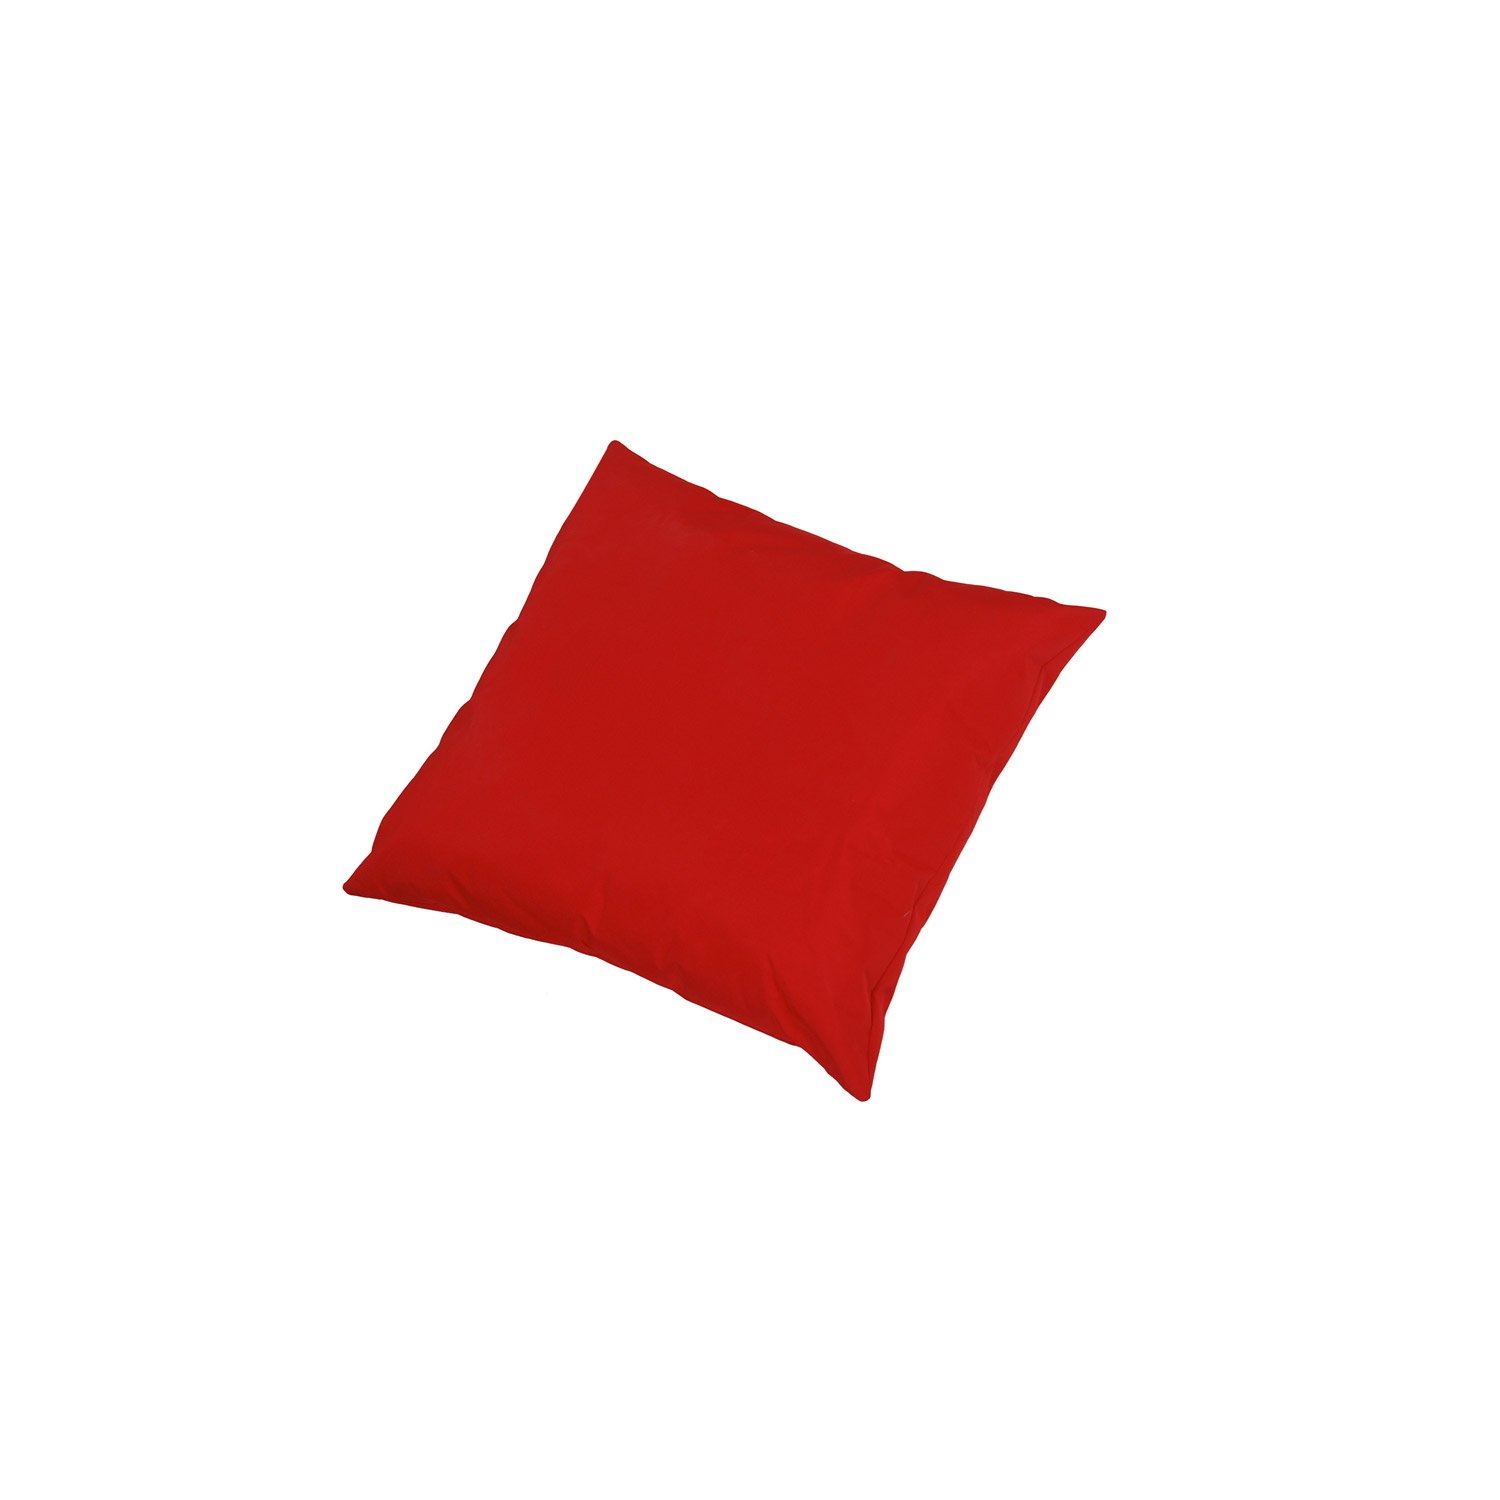 Coussin imperm able inspire mona inspire rouge 40x40 cm leroy merlin - Coussin leroy merlin ...